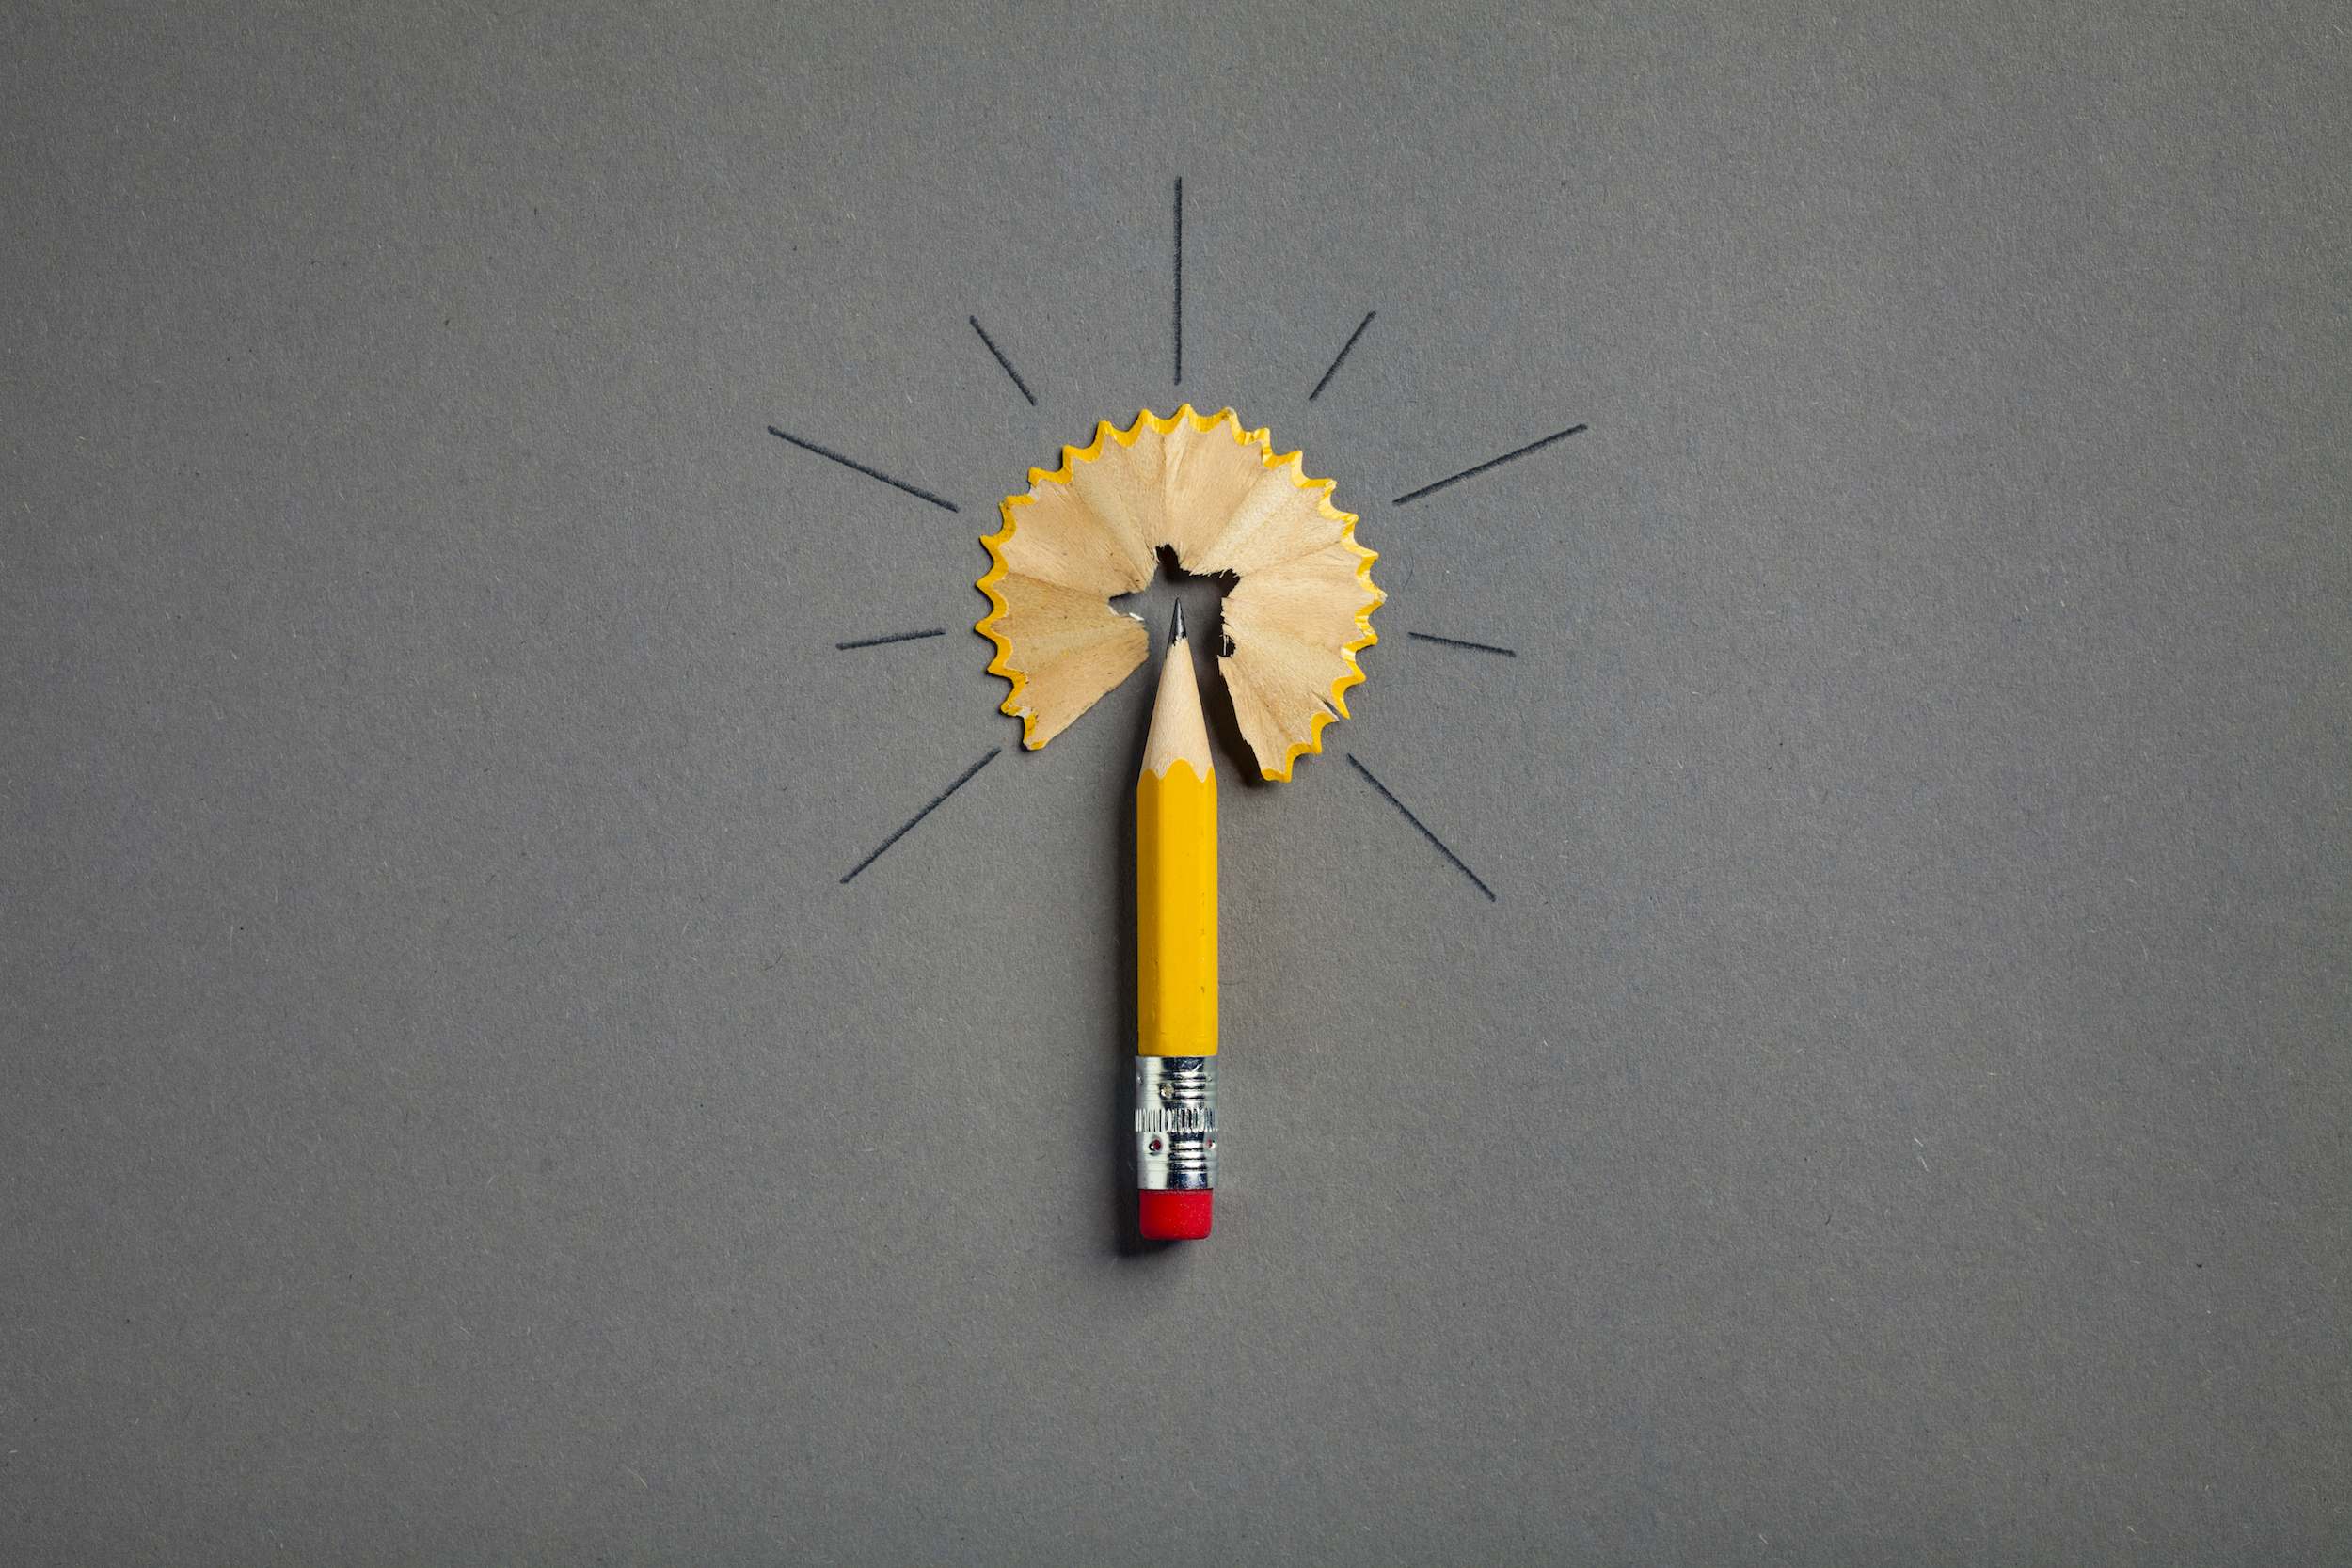 Yellow Pencil Connecting the Dots